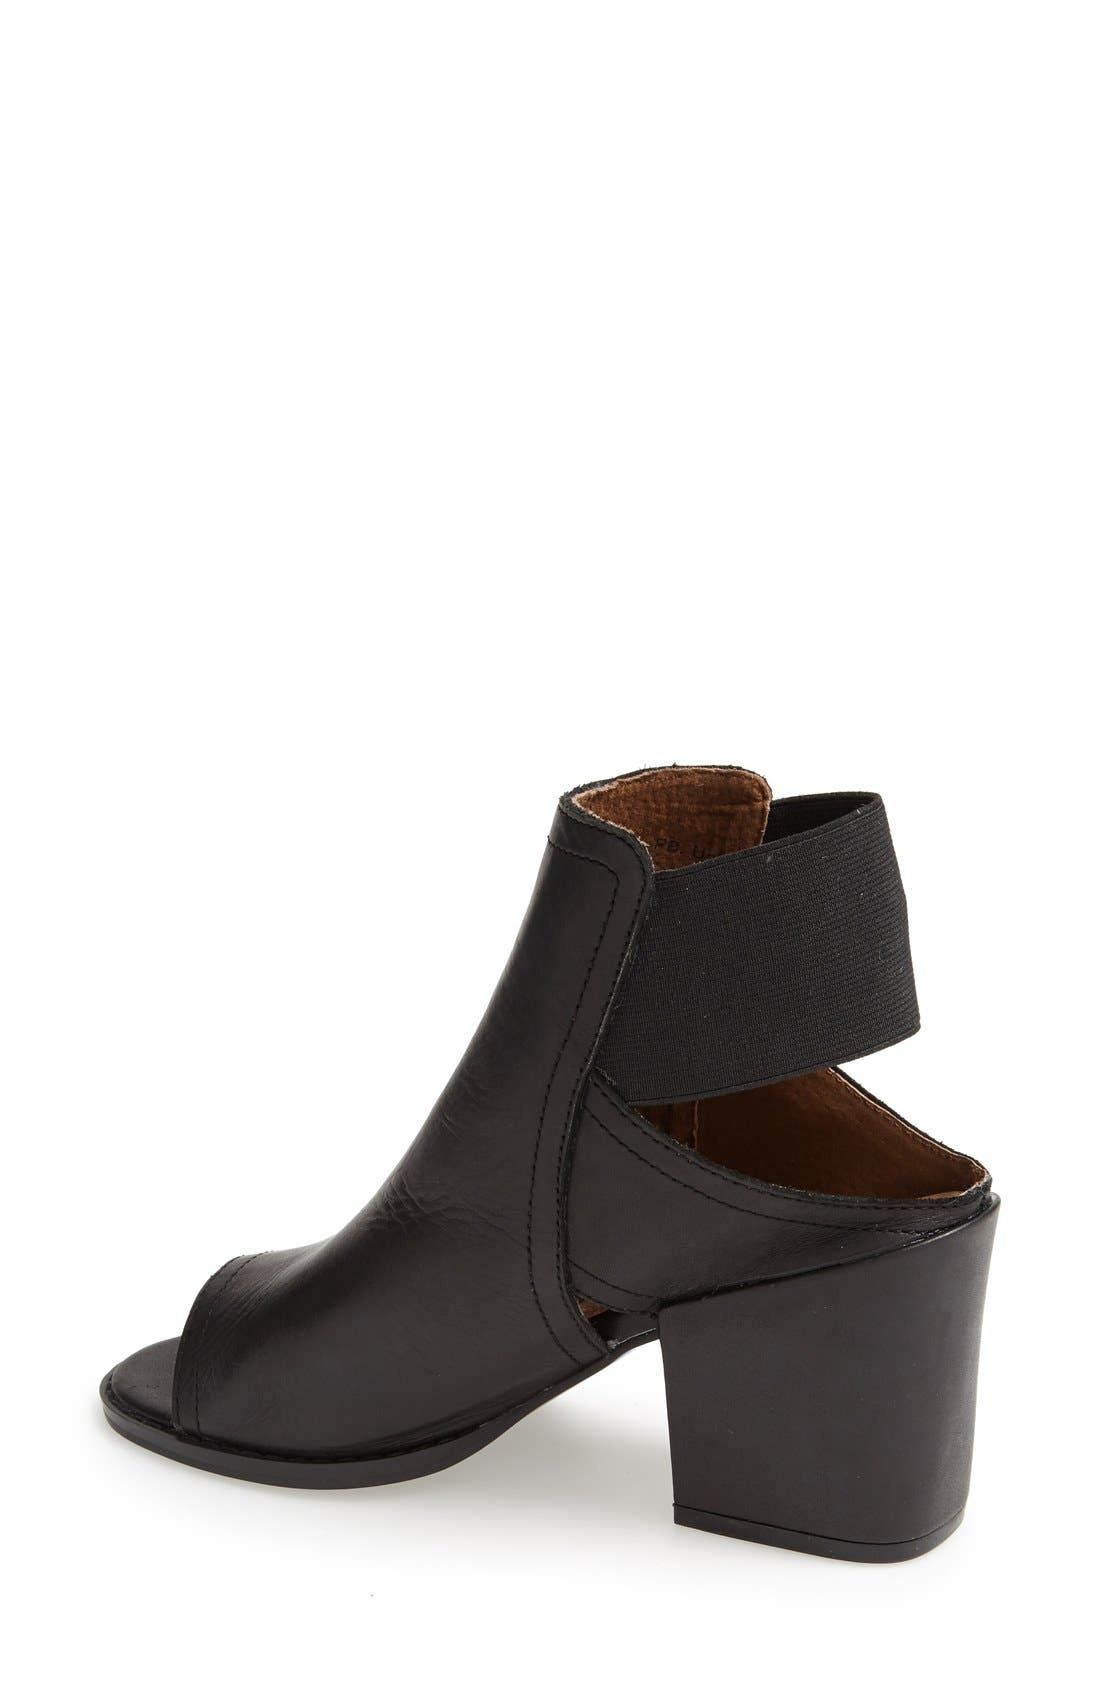 SIXTYSEVEN, 'Polly' Open Toe Bootie, Alternate thumbnail 4, color, 001